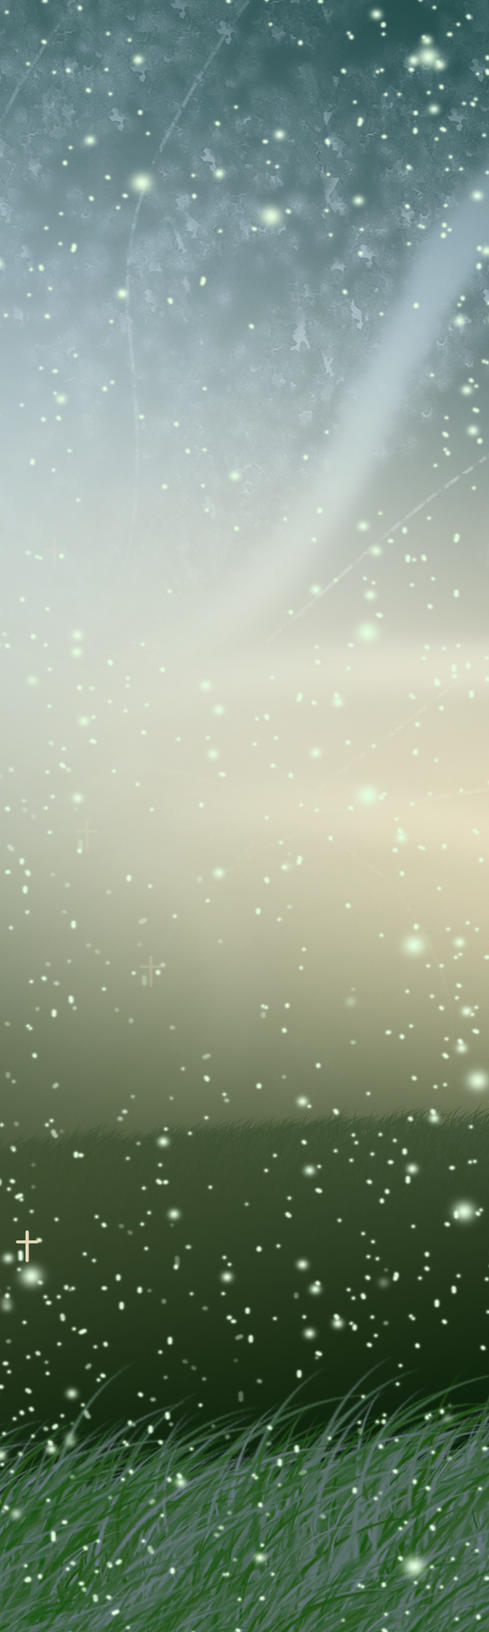 Free to Use Custom Box BG - Extra Sparkly by Scutterland